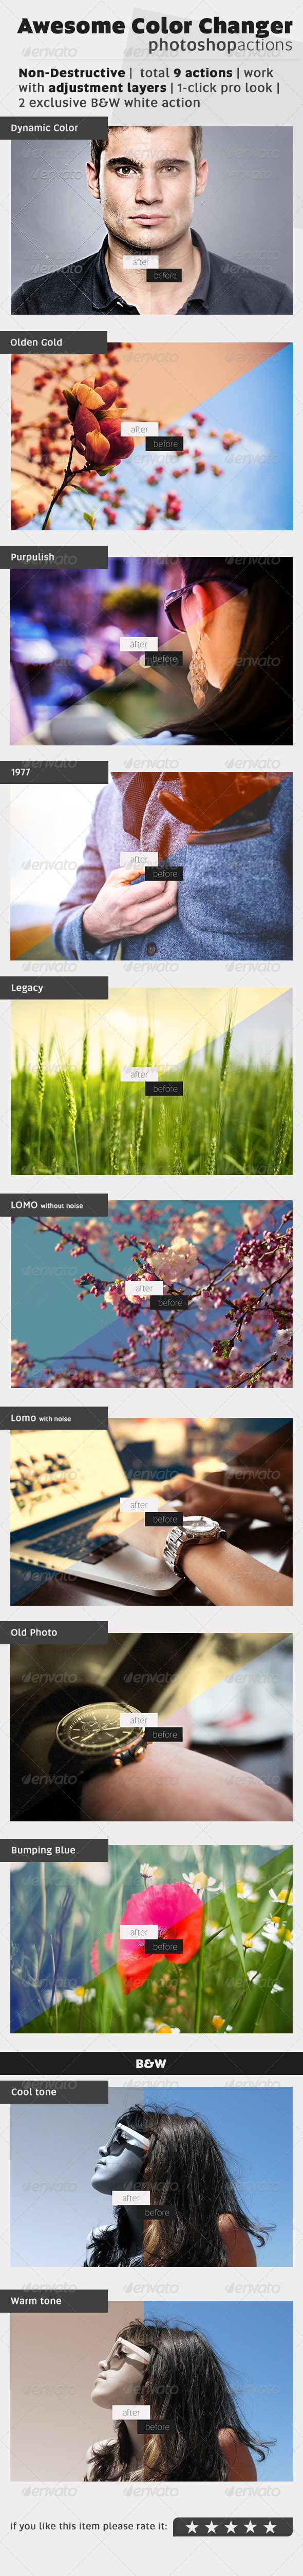 GraphicRiver Awesome Color Changer 7930562